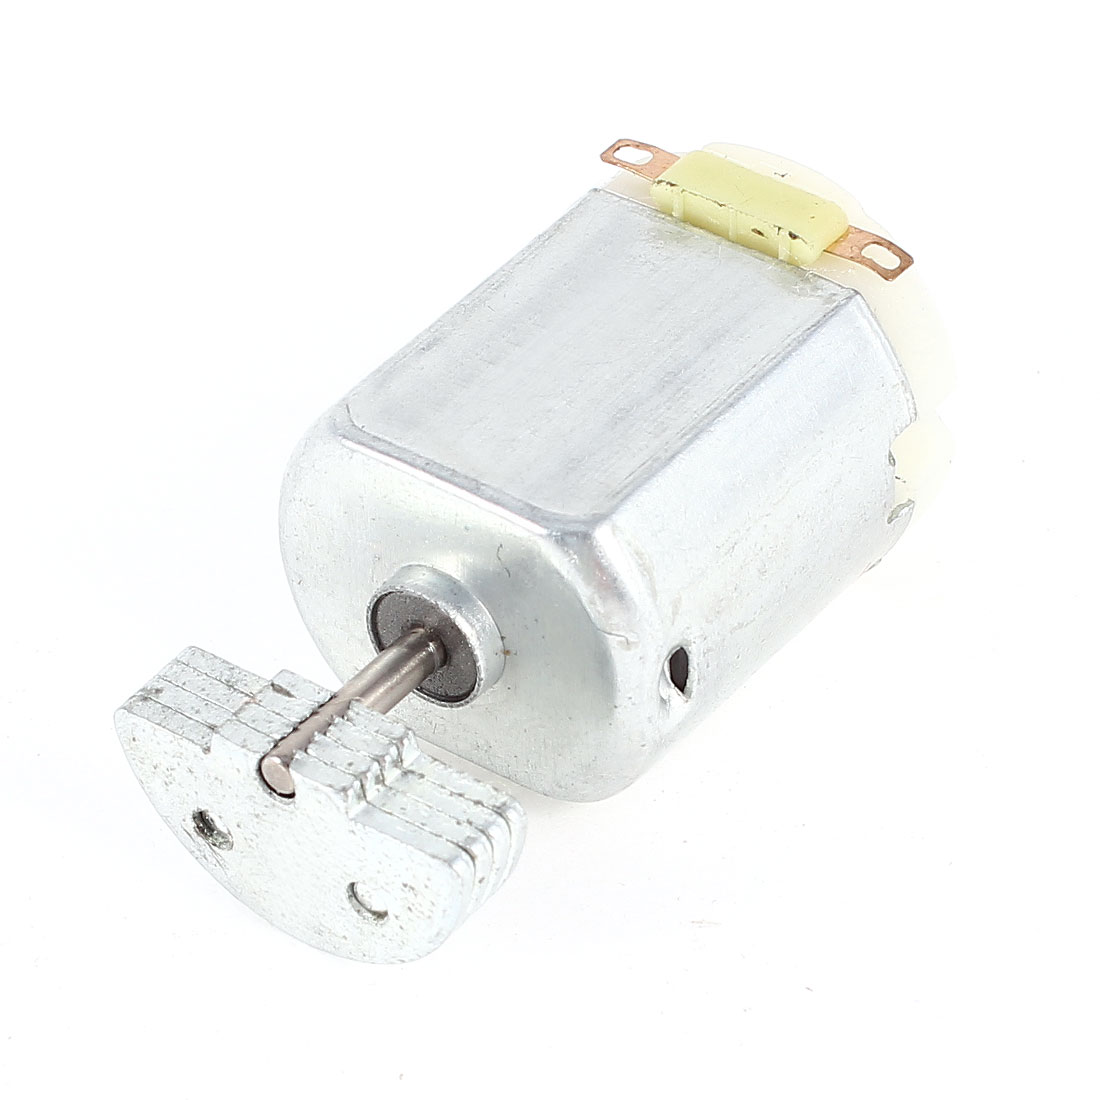 Mini Vibration Vibrating Electric Motor DC 3V 5000RPM for Massager Device